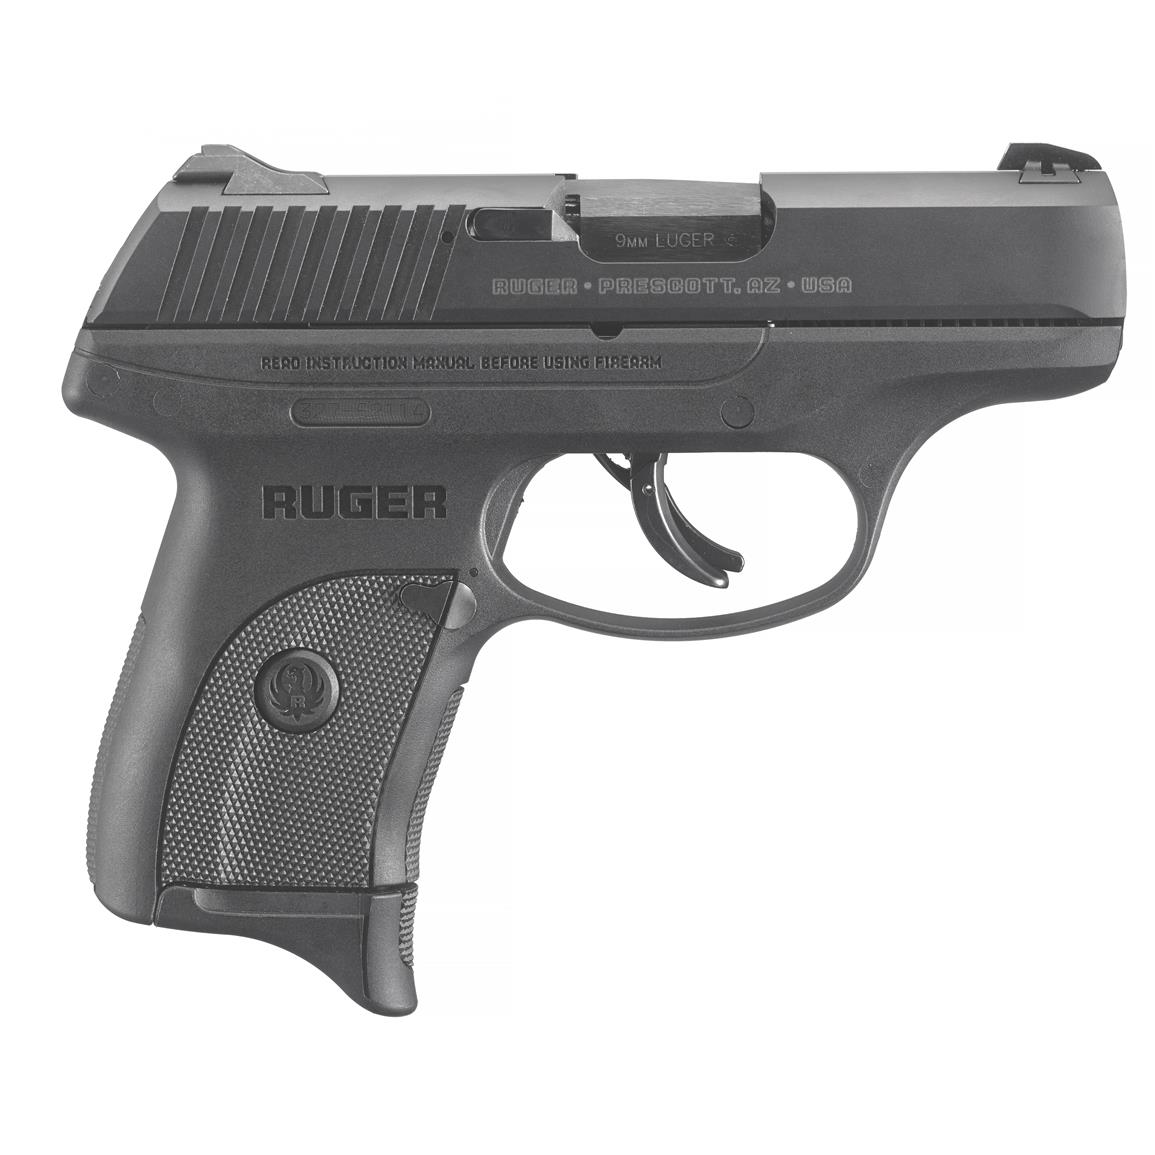 "Ruger LC9s Pro, Semi-Automatic, 9mm, 3.12"" Barrel, Integrated Trigger Safety, 7+1 Rounds"